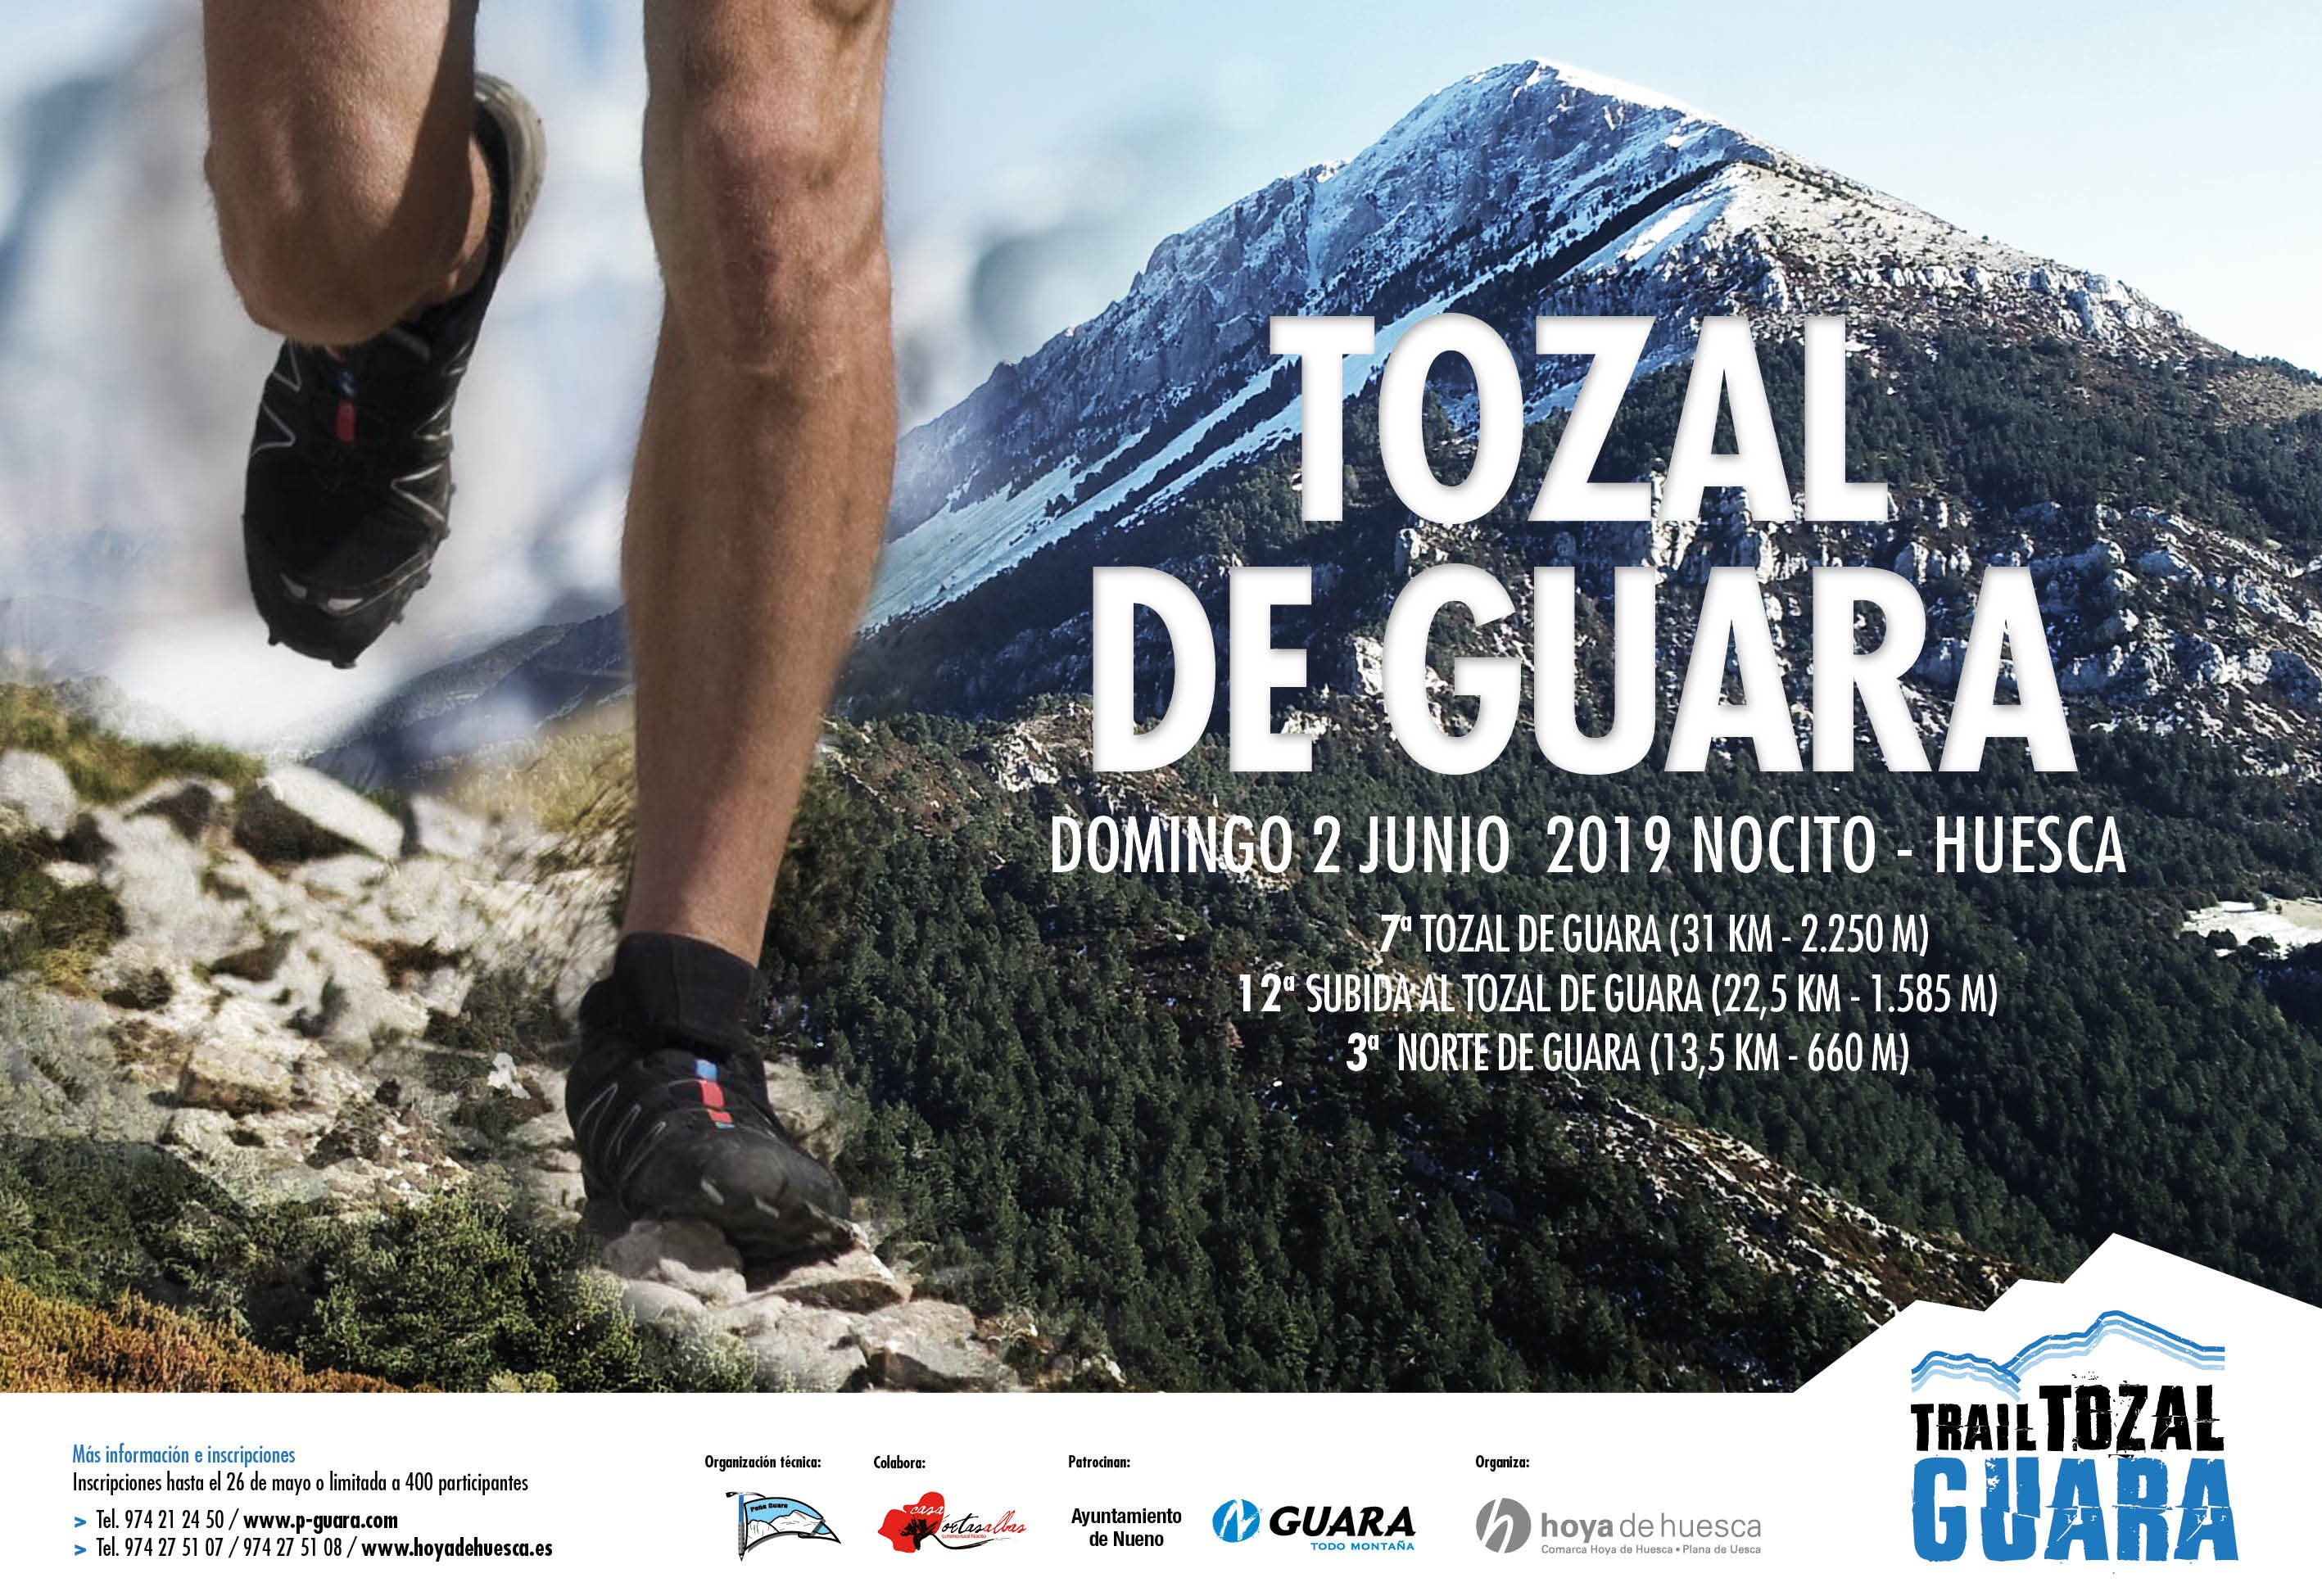 Trail Tozal Guara